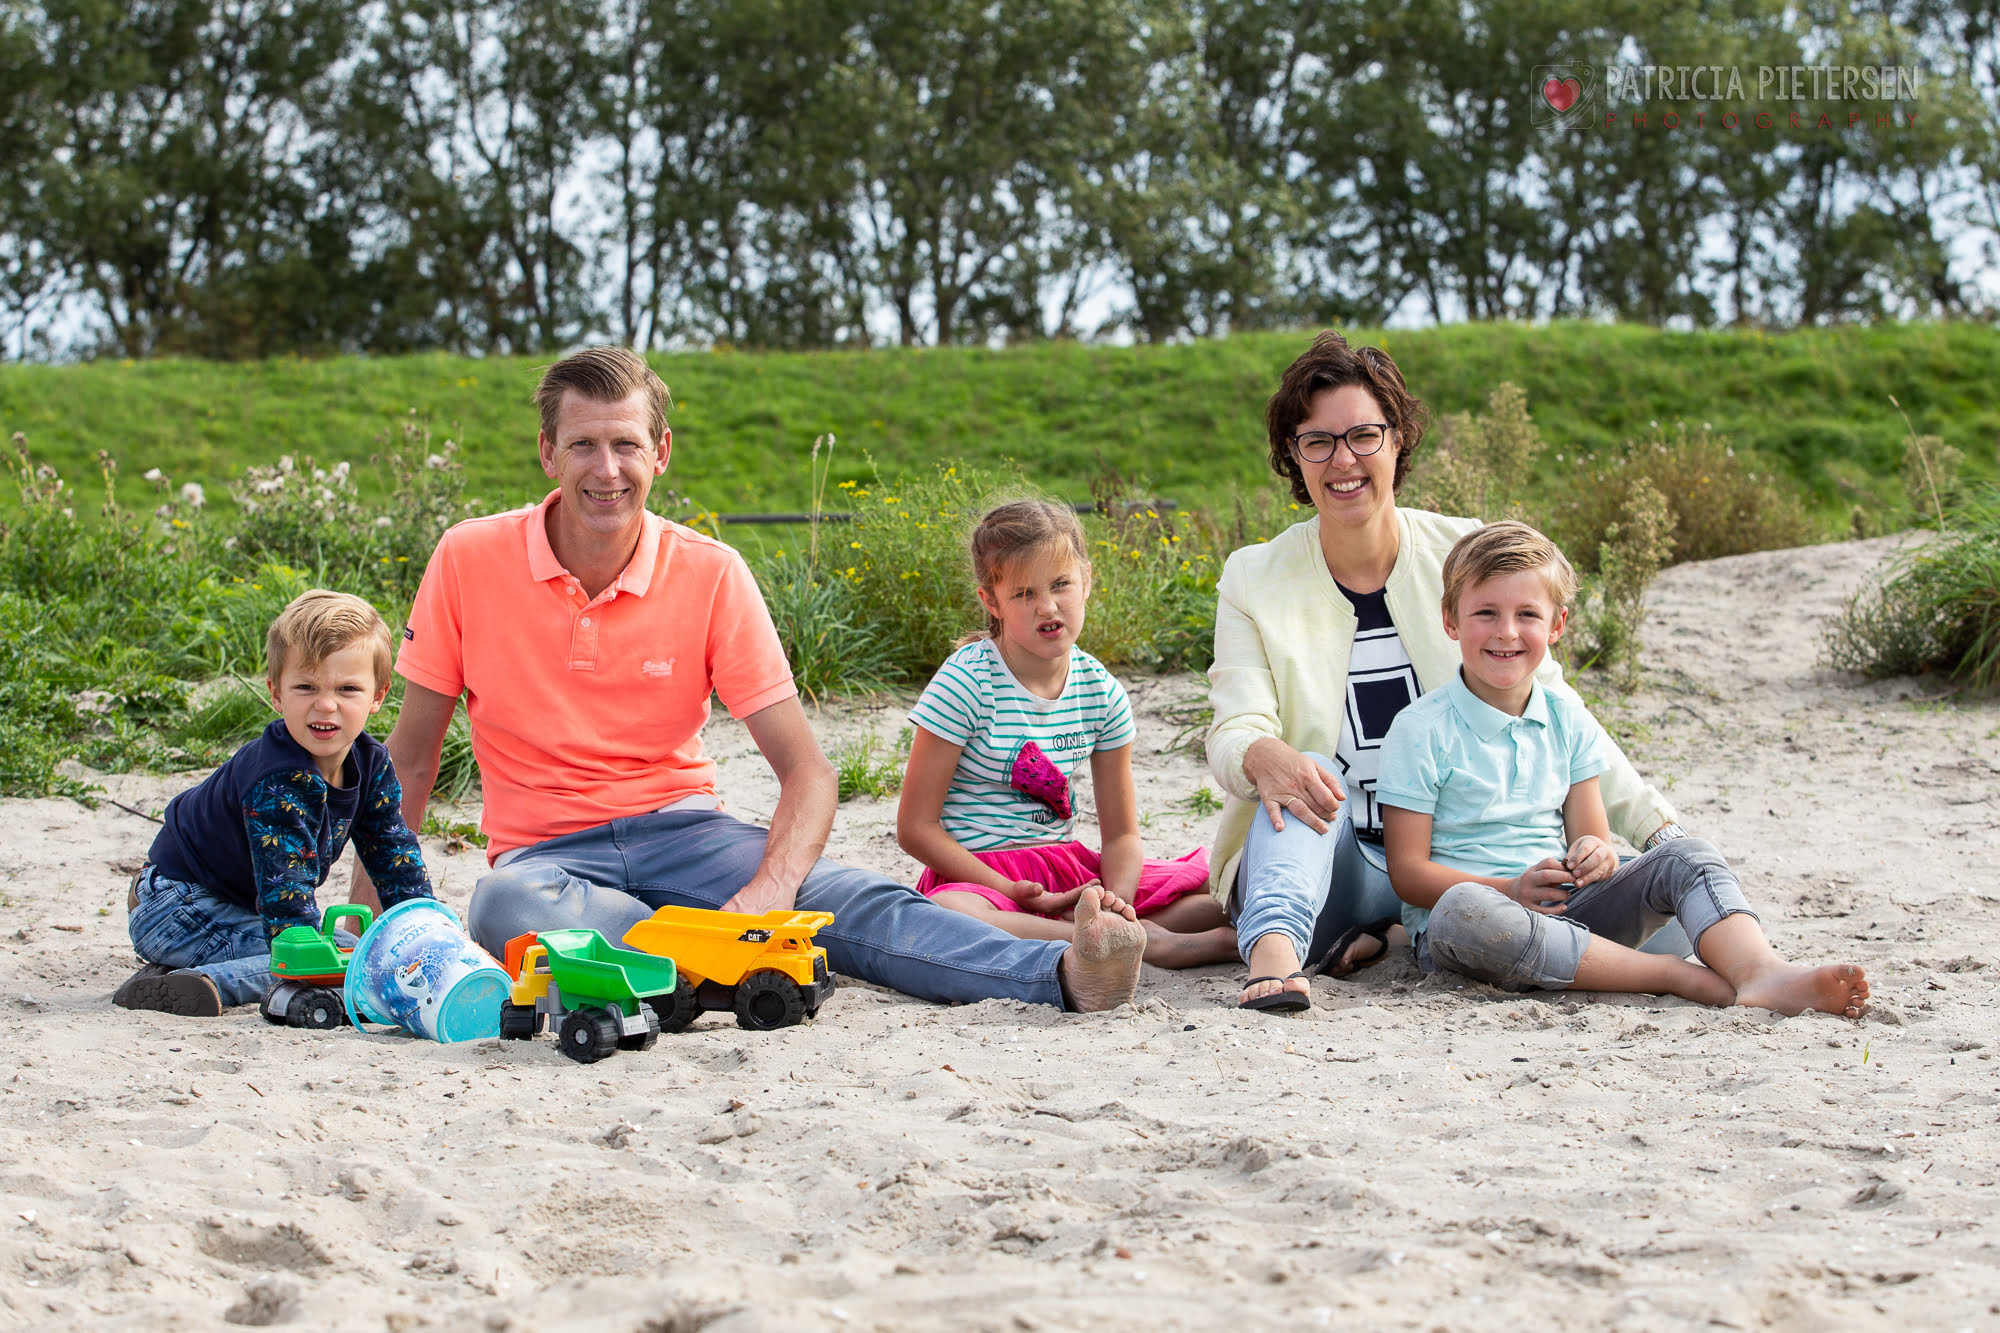 Wels Familiereportage Portretreportage Lelystad Houtribstrand Patricia Pietersen Photography (12)